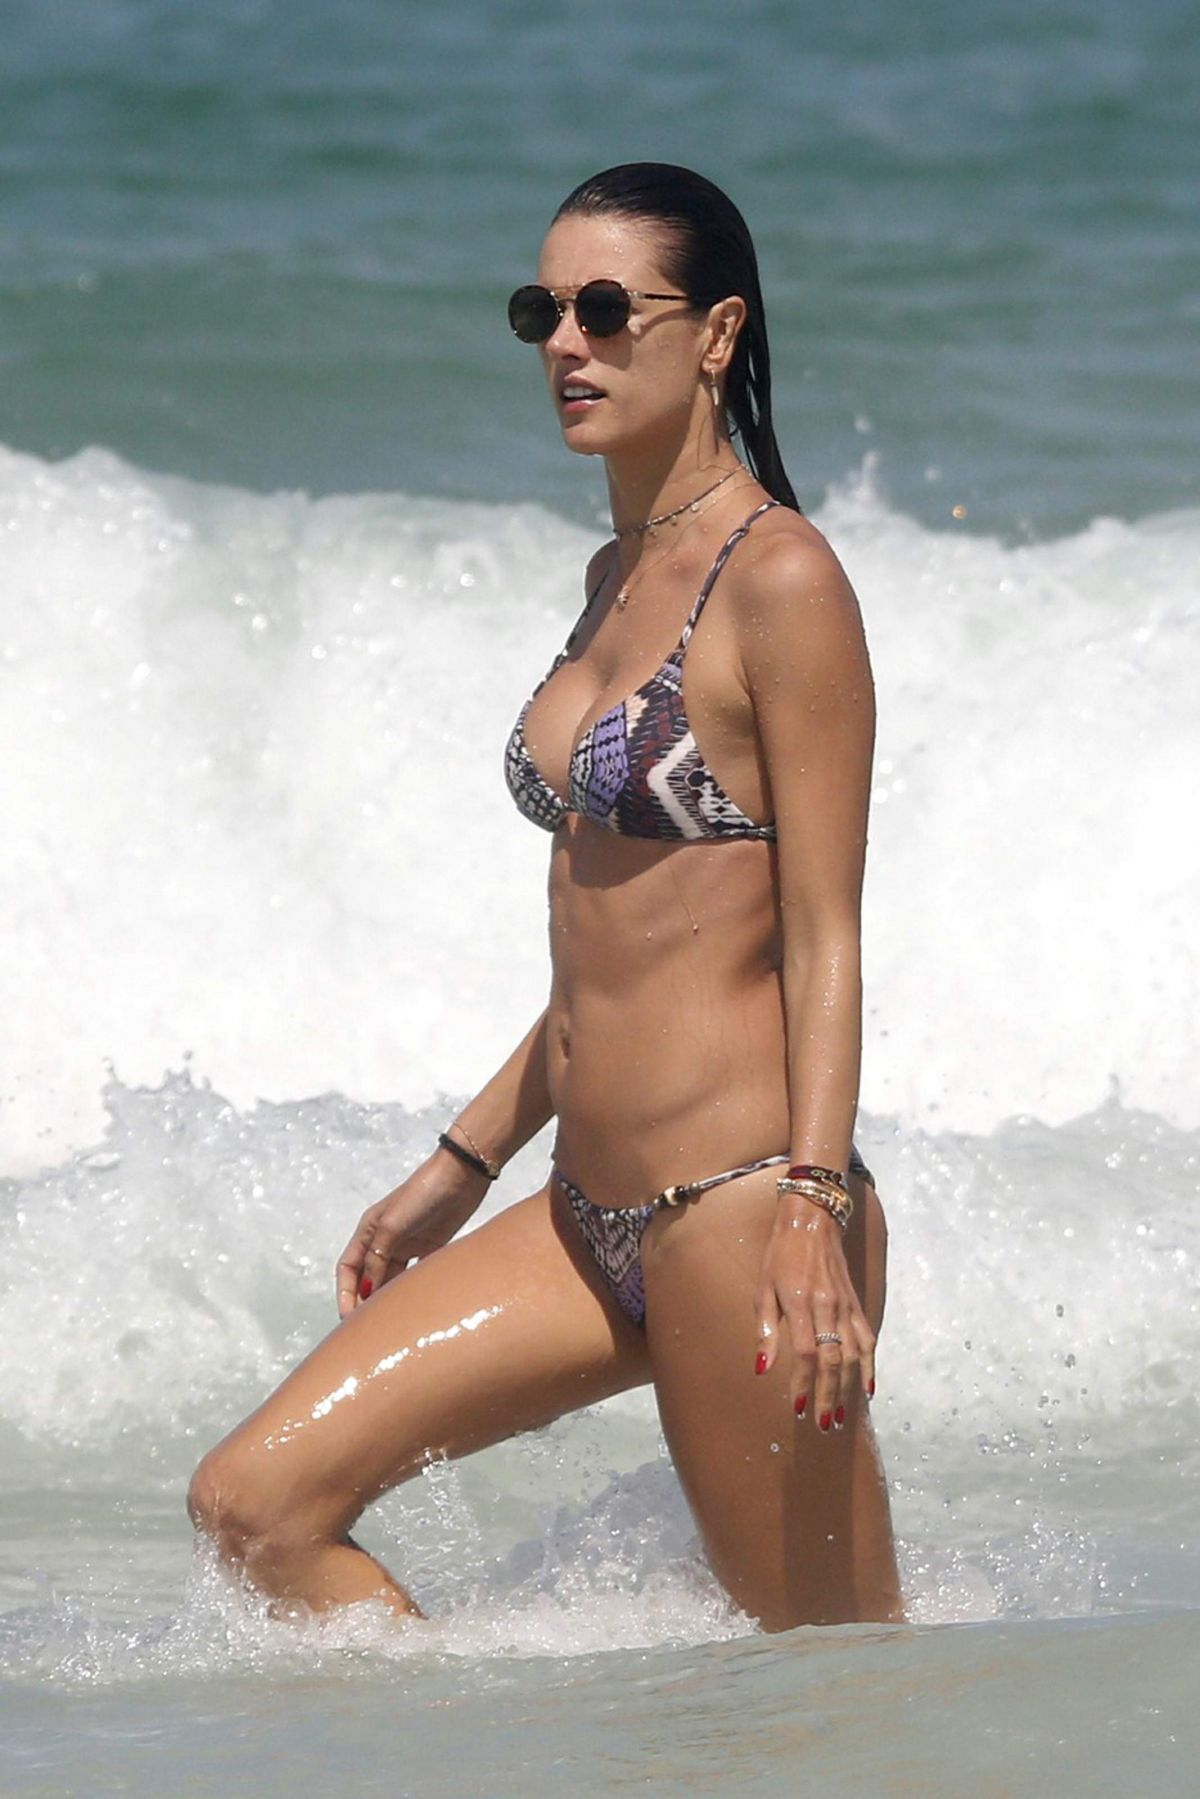 ALESSANDRA AMBROSIO in Bikini at a Beach in Florianopolis ... алессандра амбросио